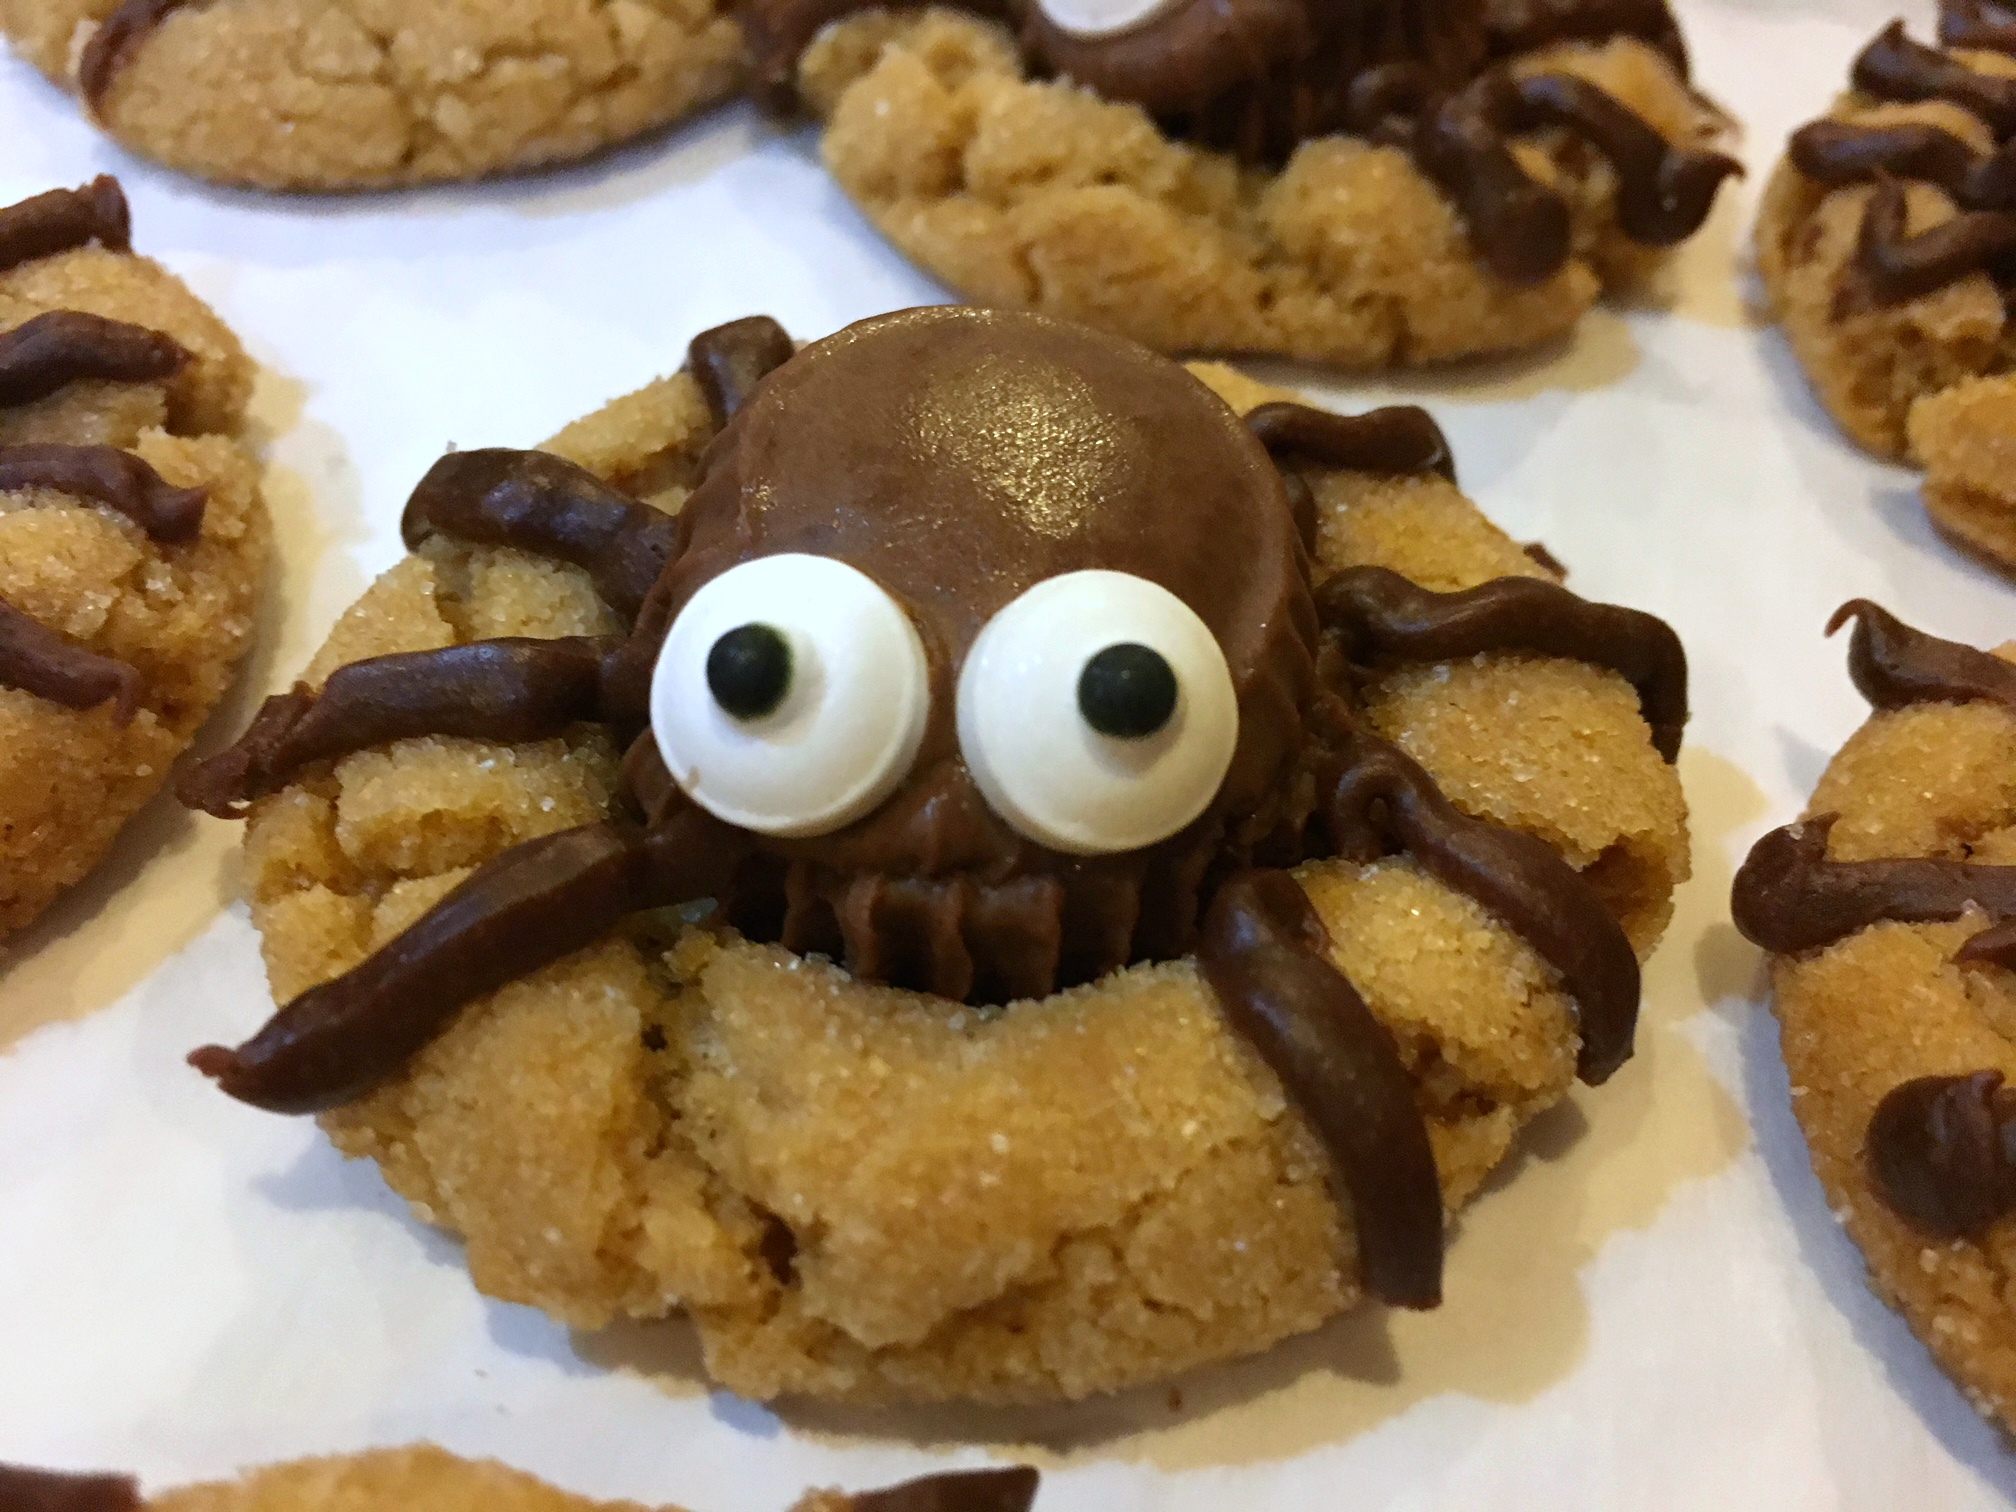 happy halloween these cute little guys make a great addition to a fall bake sale or harvest celebration be sure to allow time to the peanut butter cup in